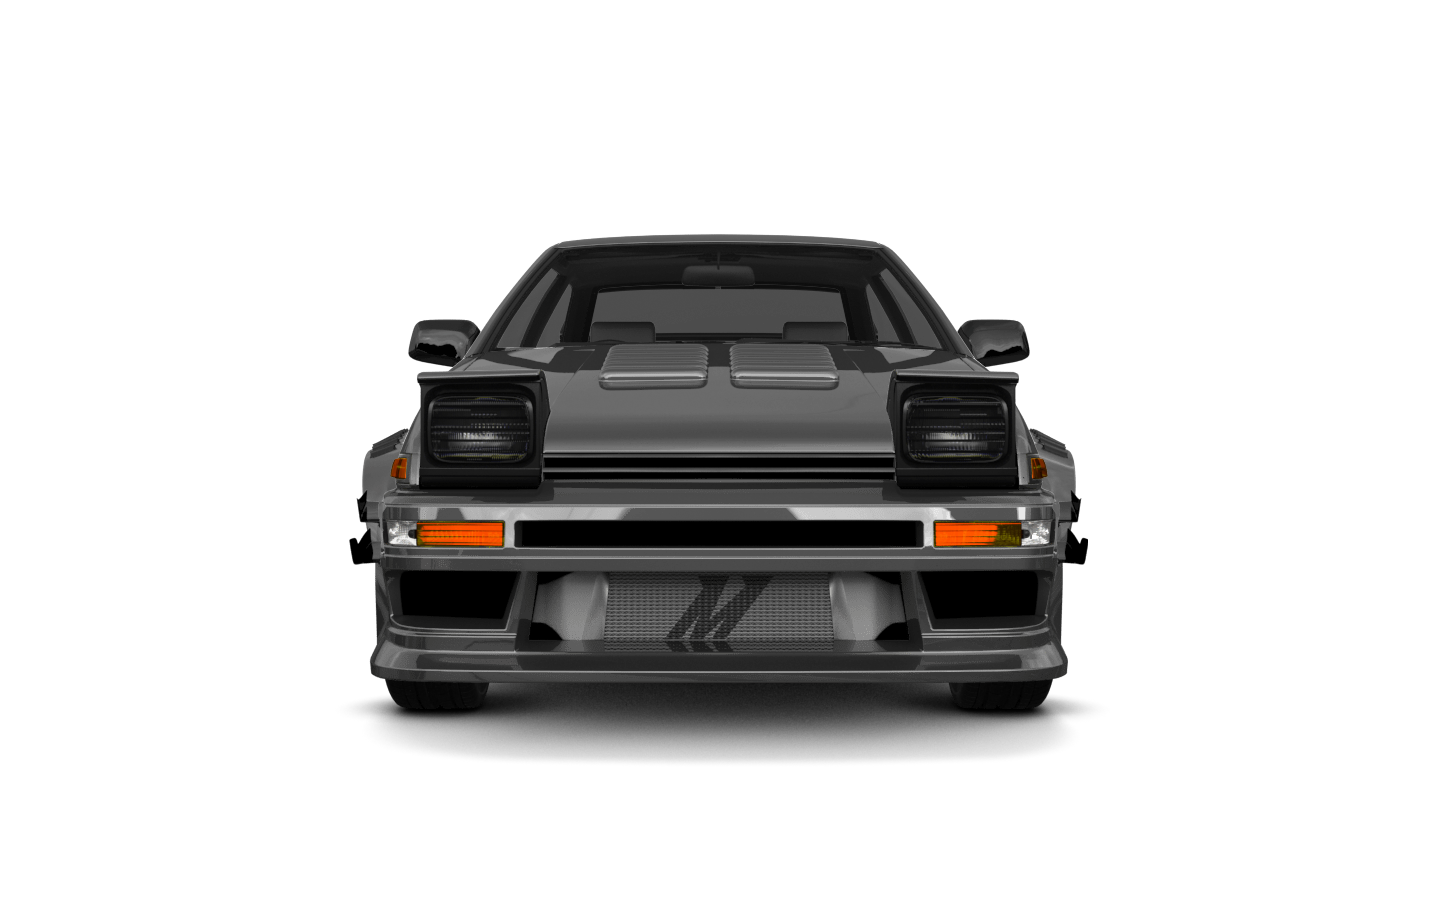 Toyota AE86 3 Door Hatchback 1985